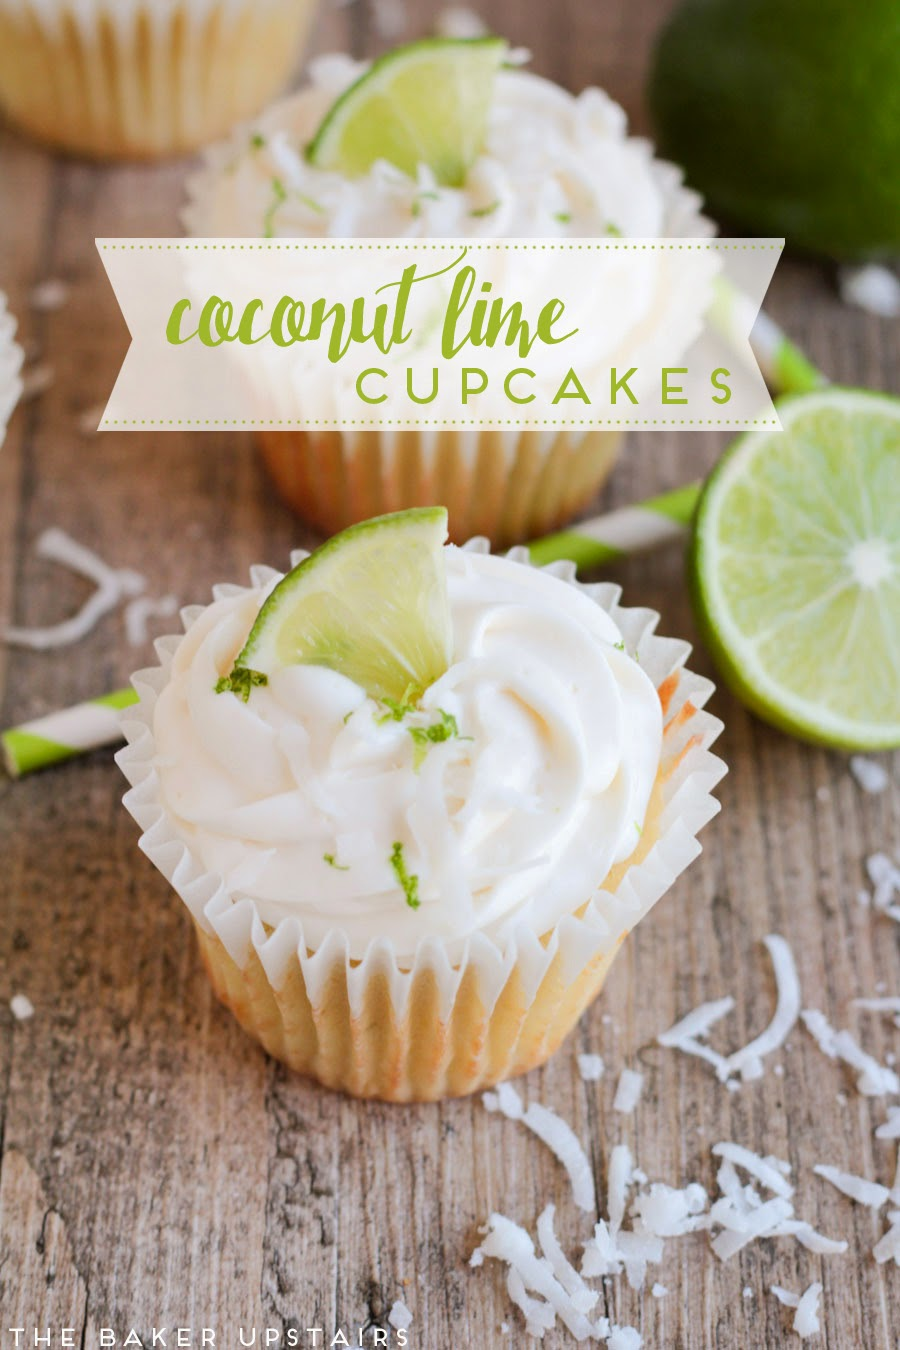 the baker upstairs: coconut lime cupcakes